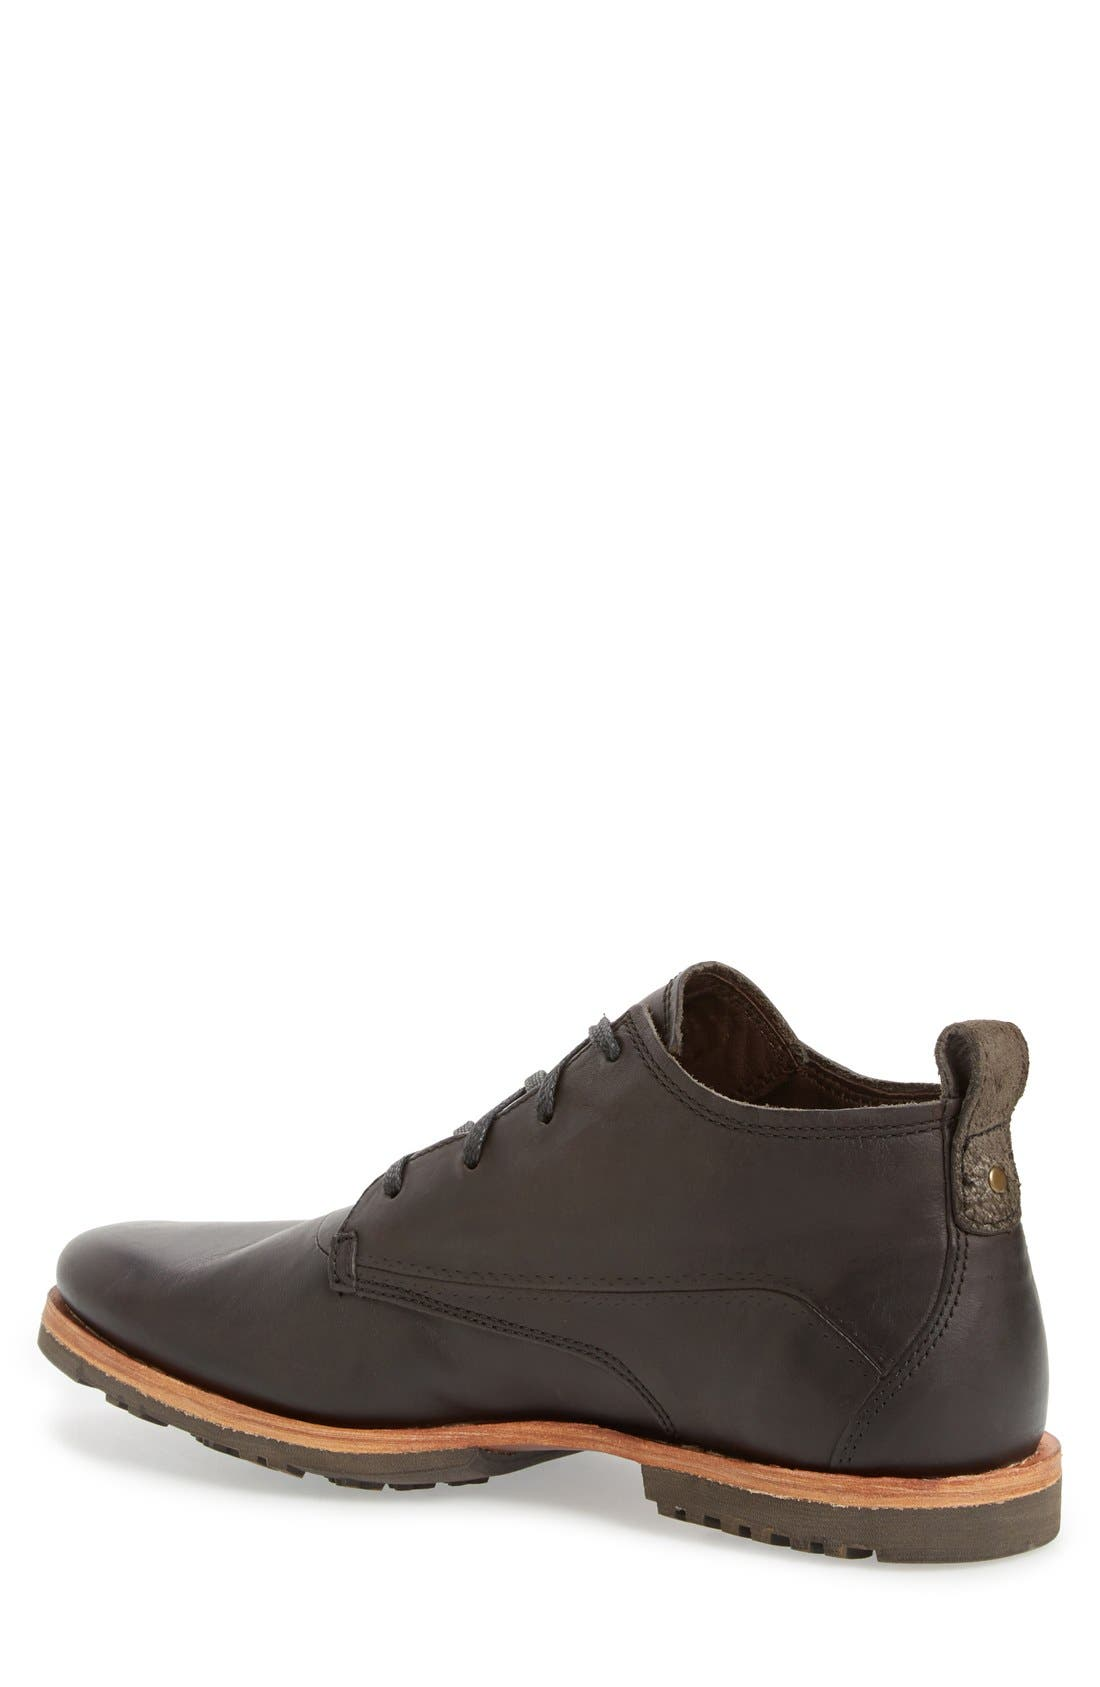 'Bardstown' Chukka Boot,                             Alternate thumbnail 8, color,